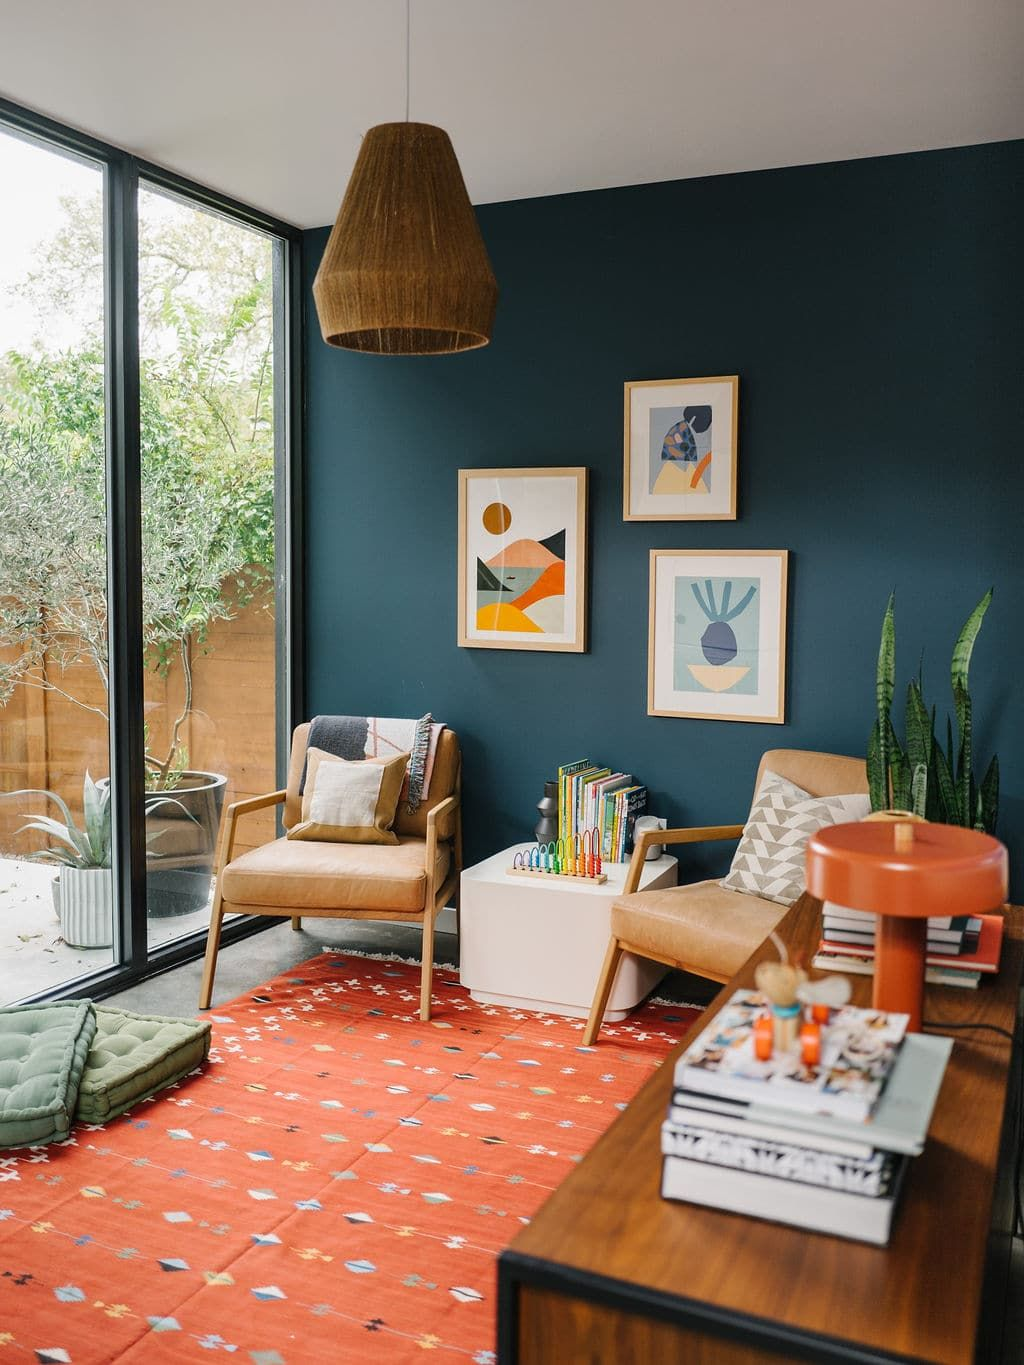 10 Things You Can Do with a Can of Paint — The Effortless Chic